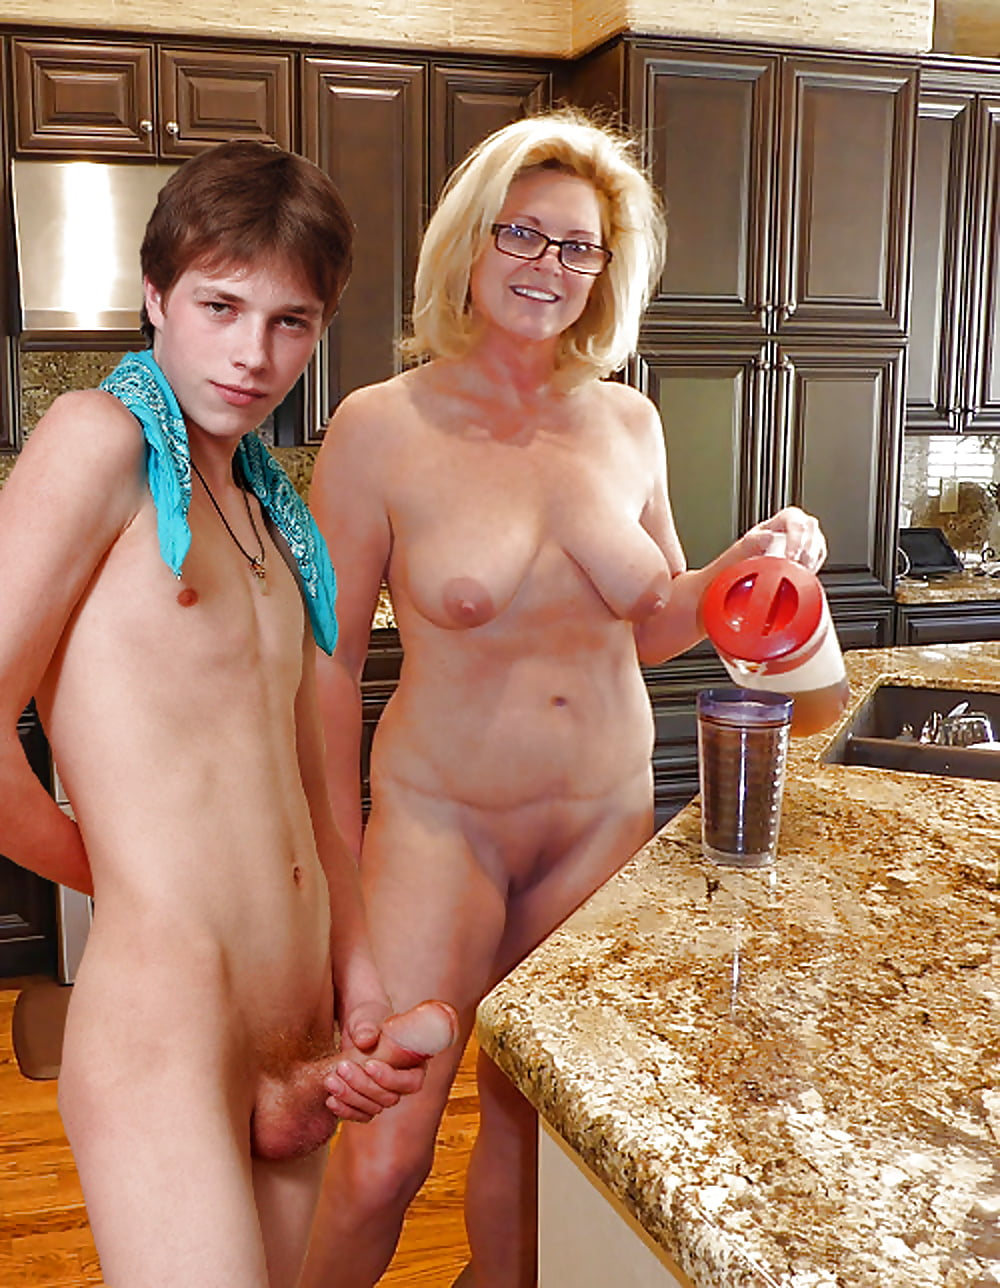 Mom likes to see son naked, busty nudist gifs